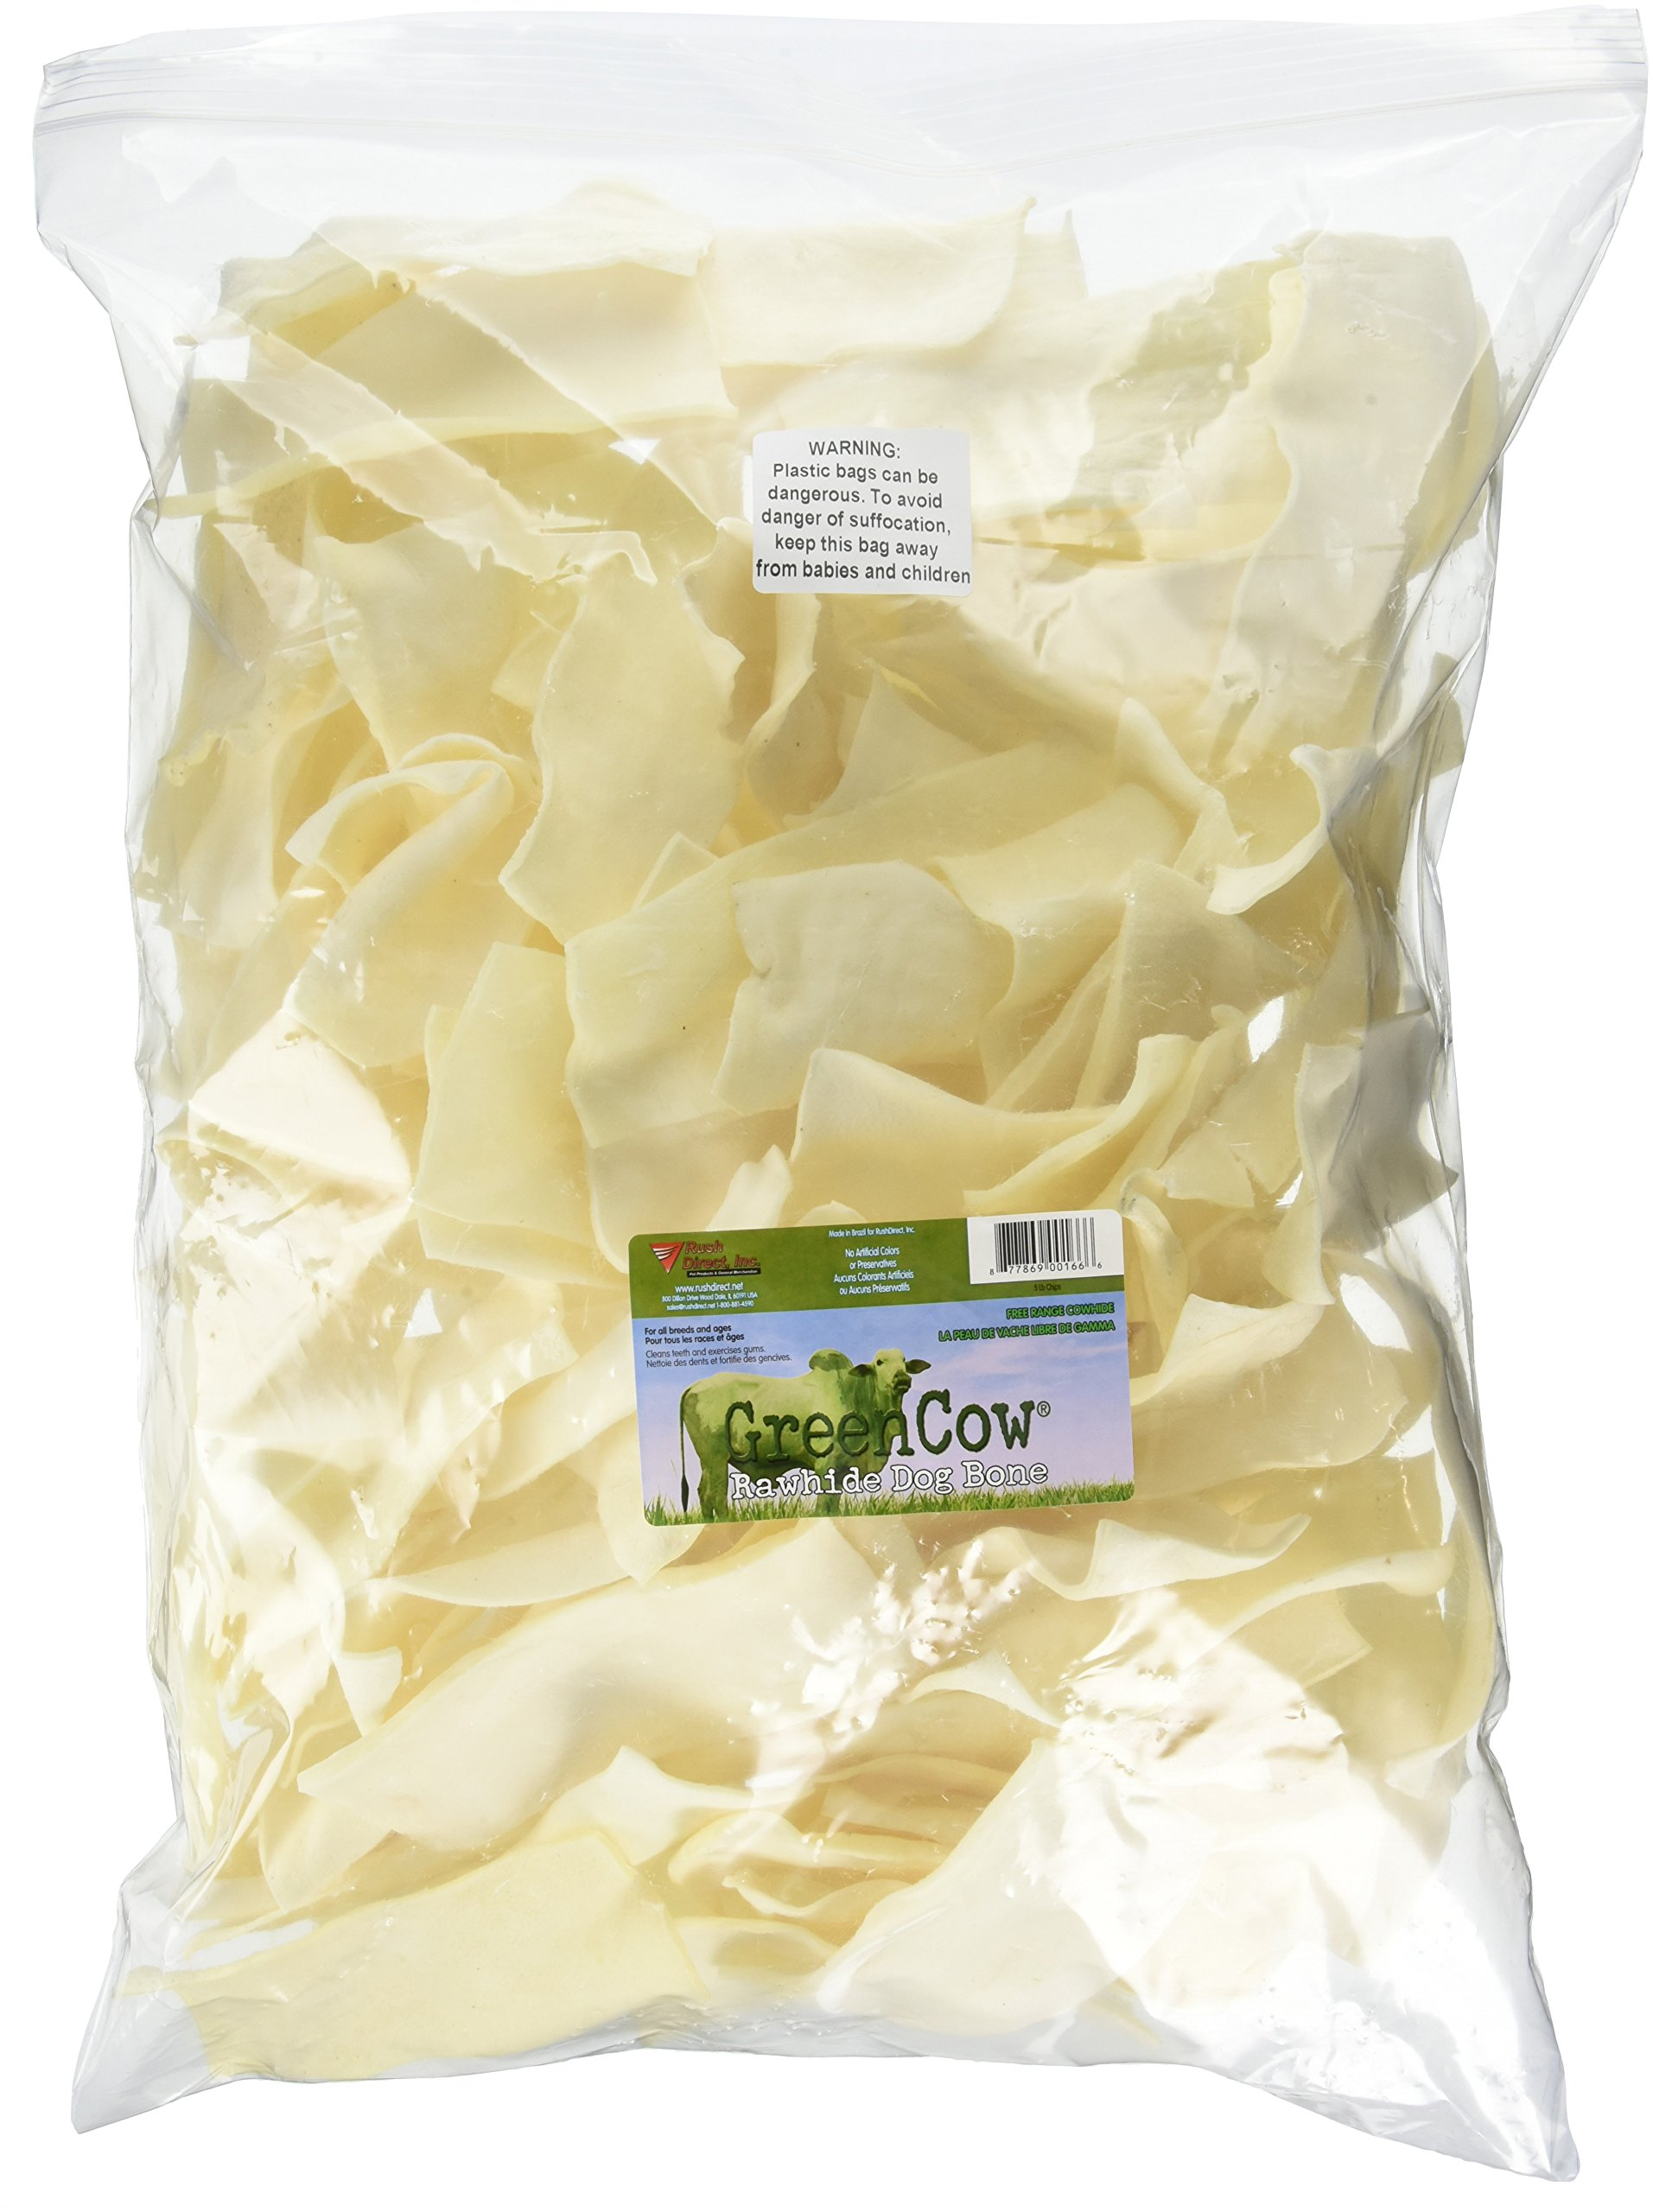 Green Cow Rawhide Dog Bones, Natural Chips, 5-Pound Bag by Rush Direct, Inc.